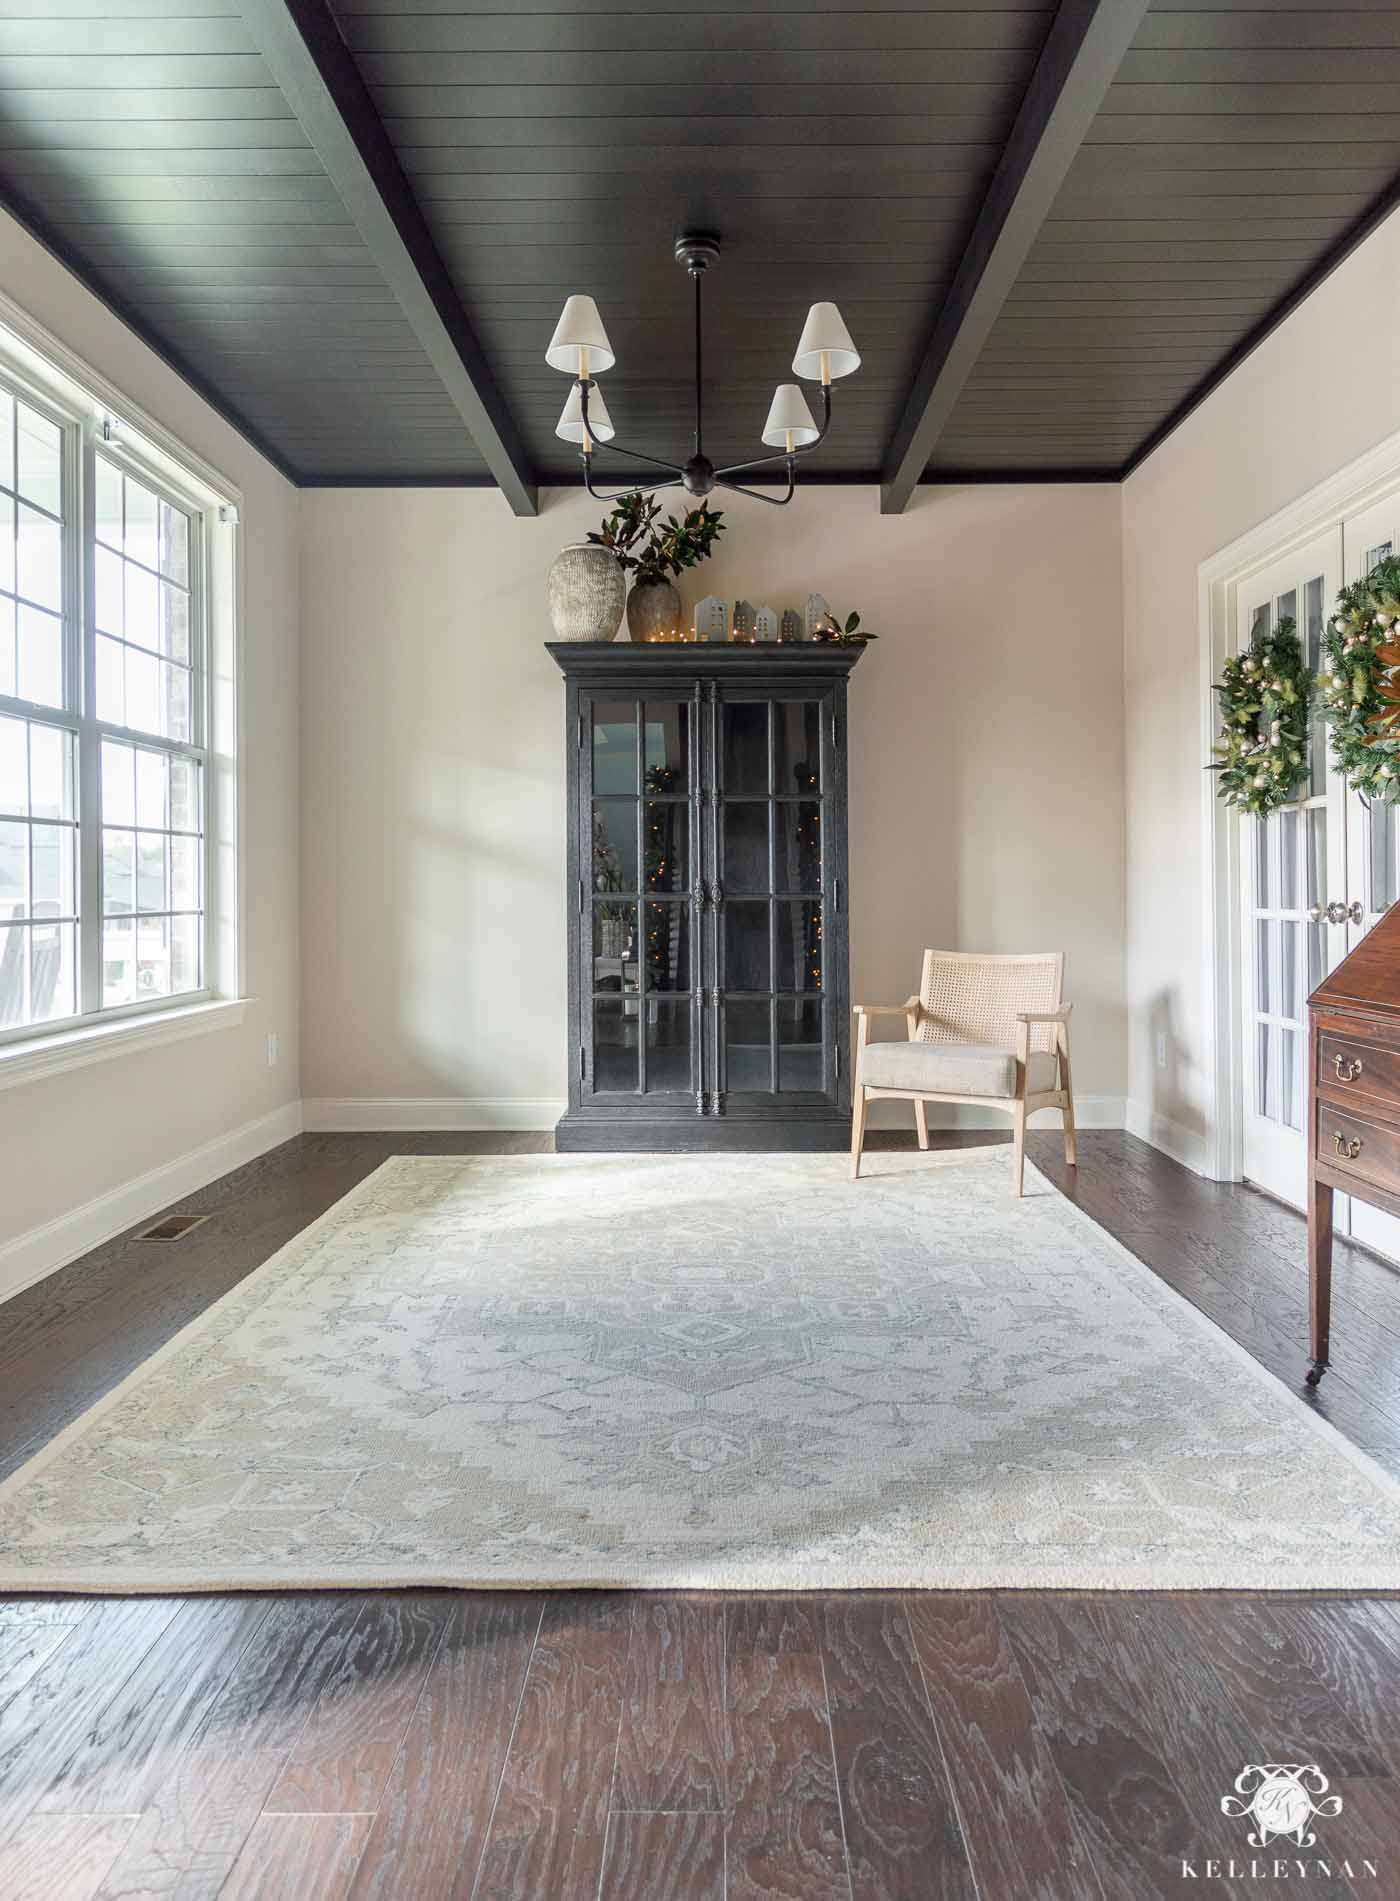 Black Shiplap Ceiling with Beams -- Conversation Room Makeover Update!